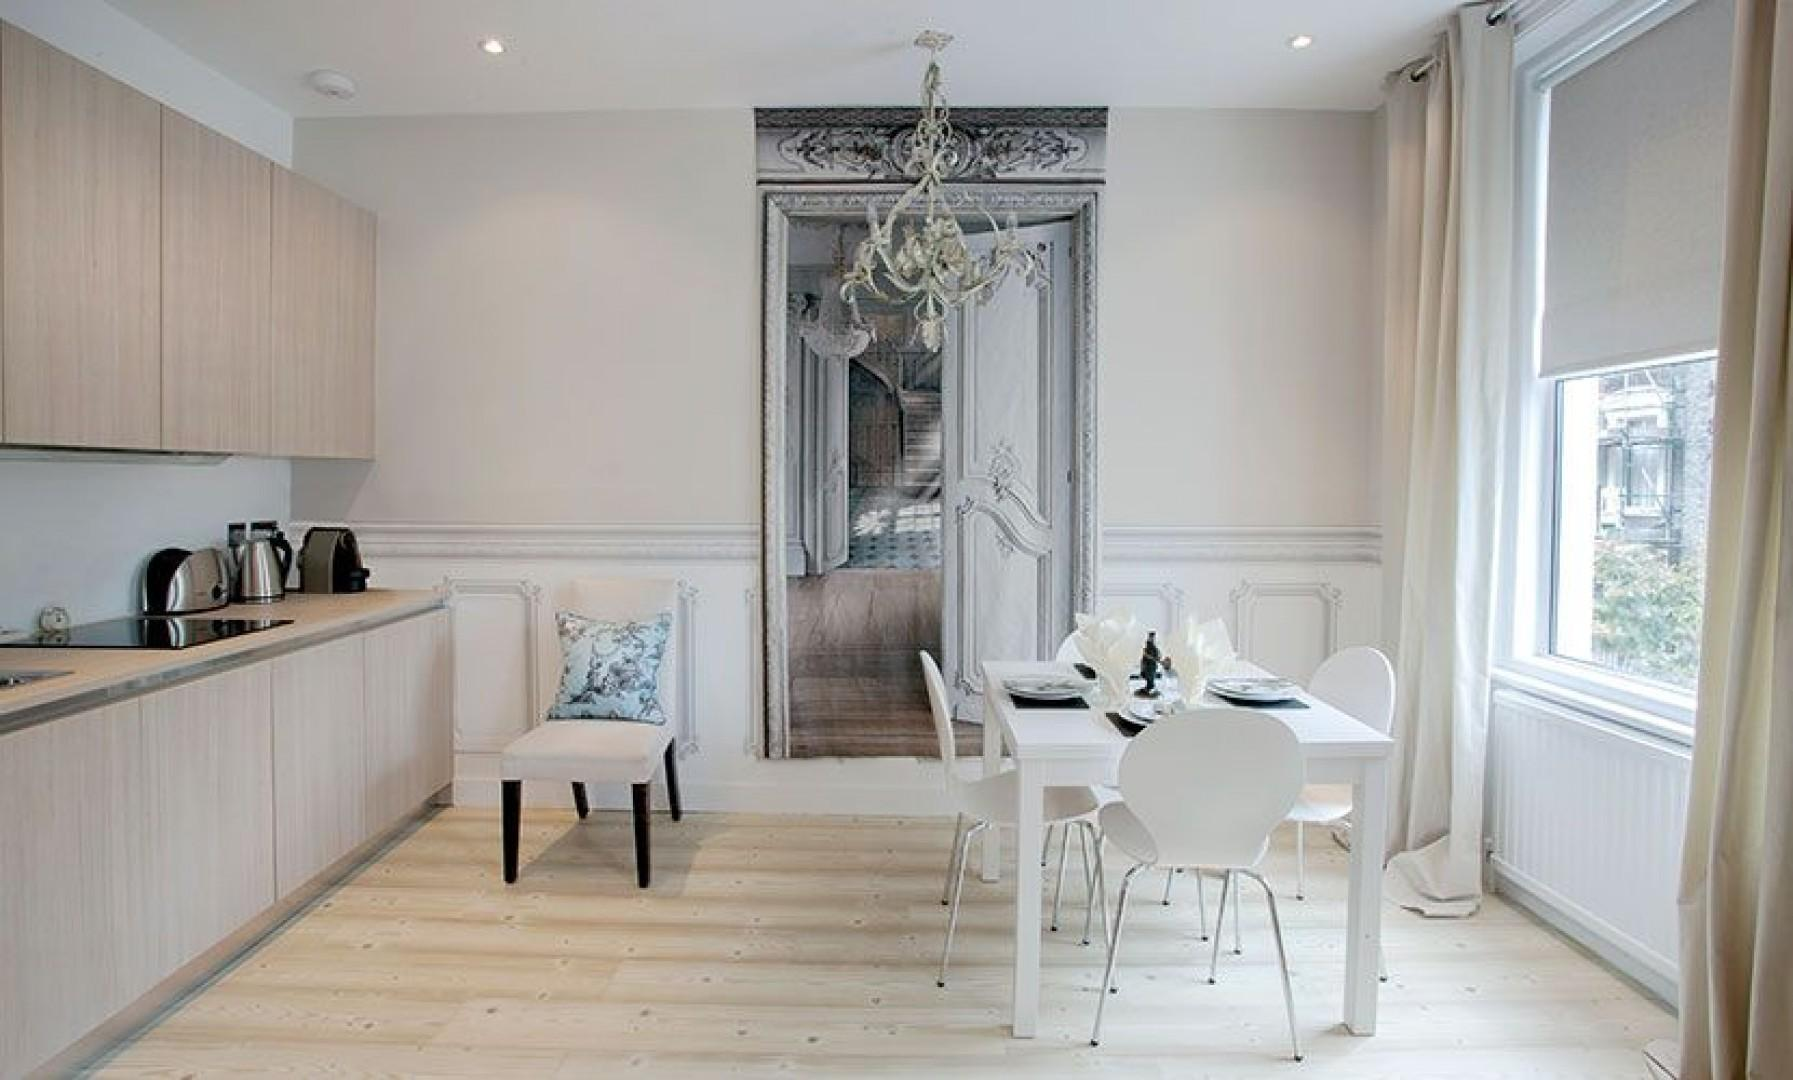 Lovely kitchen and dining area in the Addington apartment